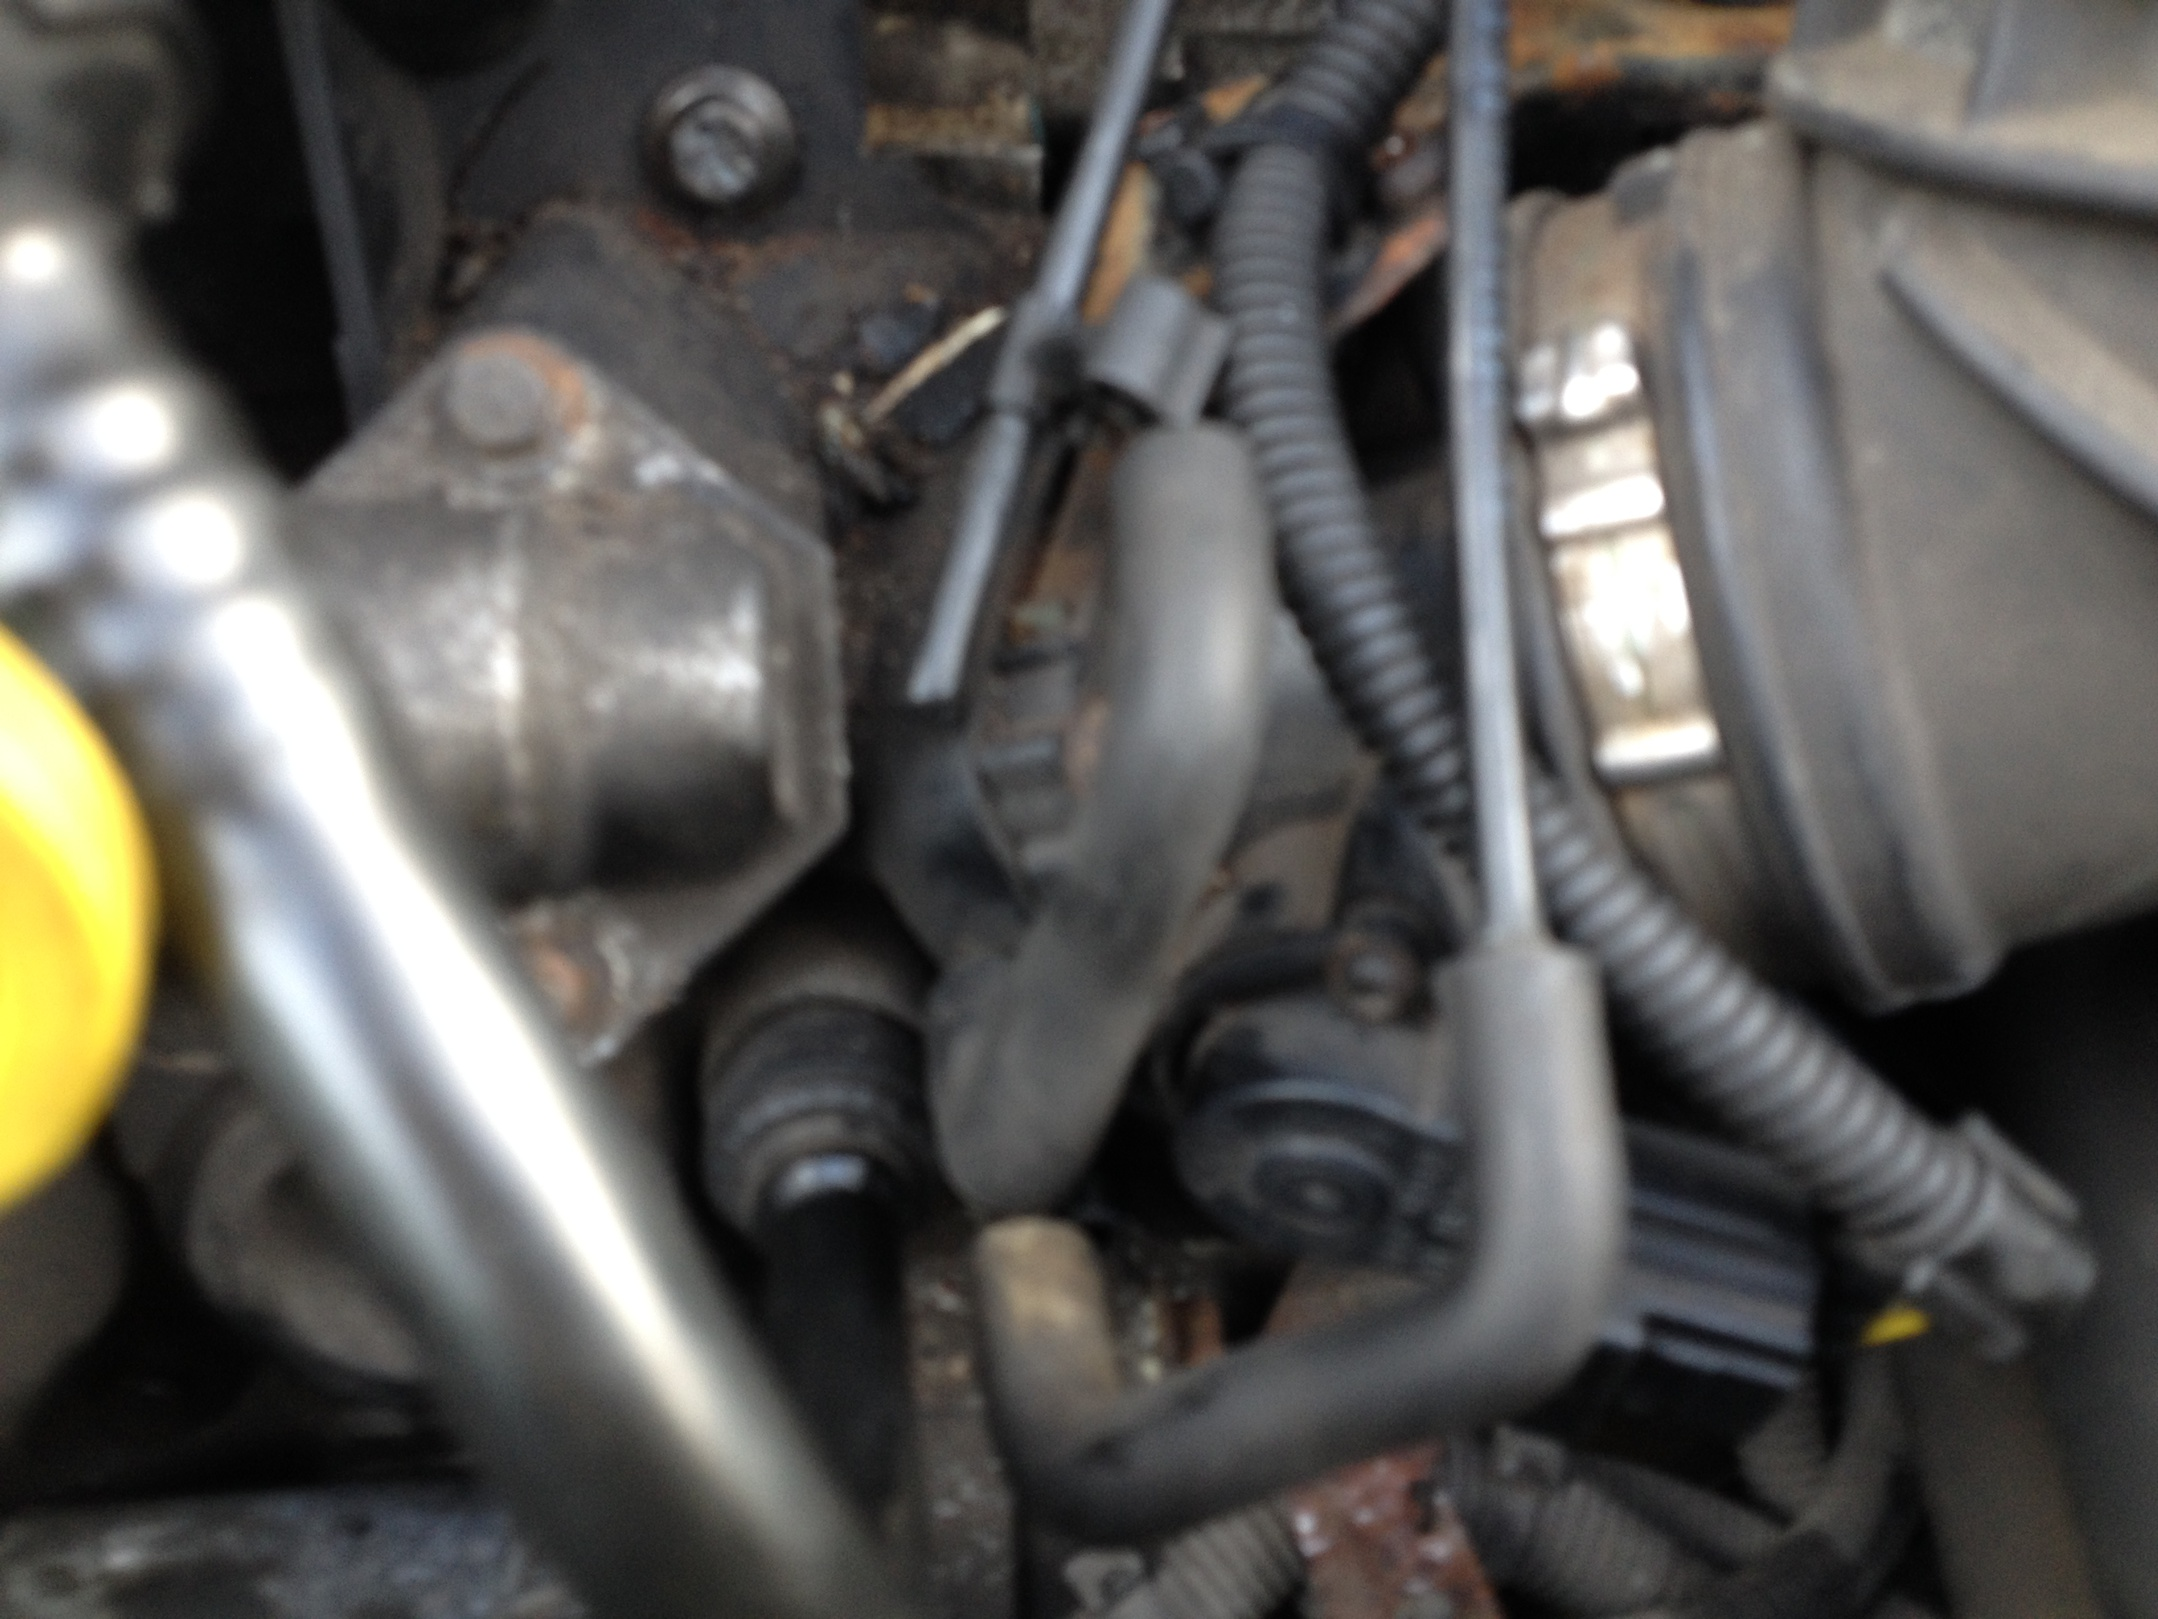 Maxresdefault likewise Maxresdefault as well Gallery besides Pcv together with Ford Focus Zetec S V Img. on 2001 ford focus egr valve